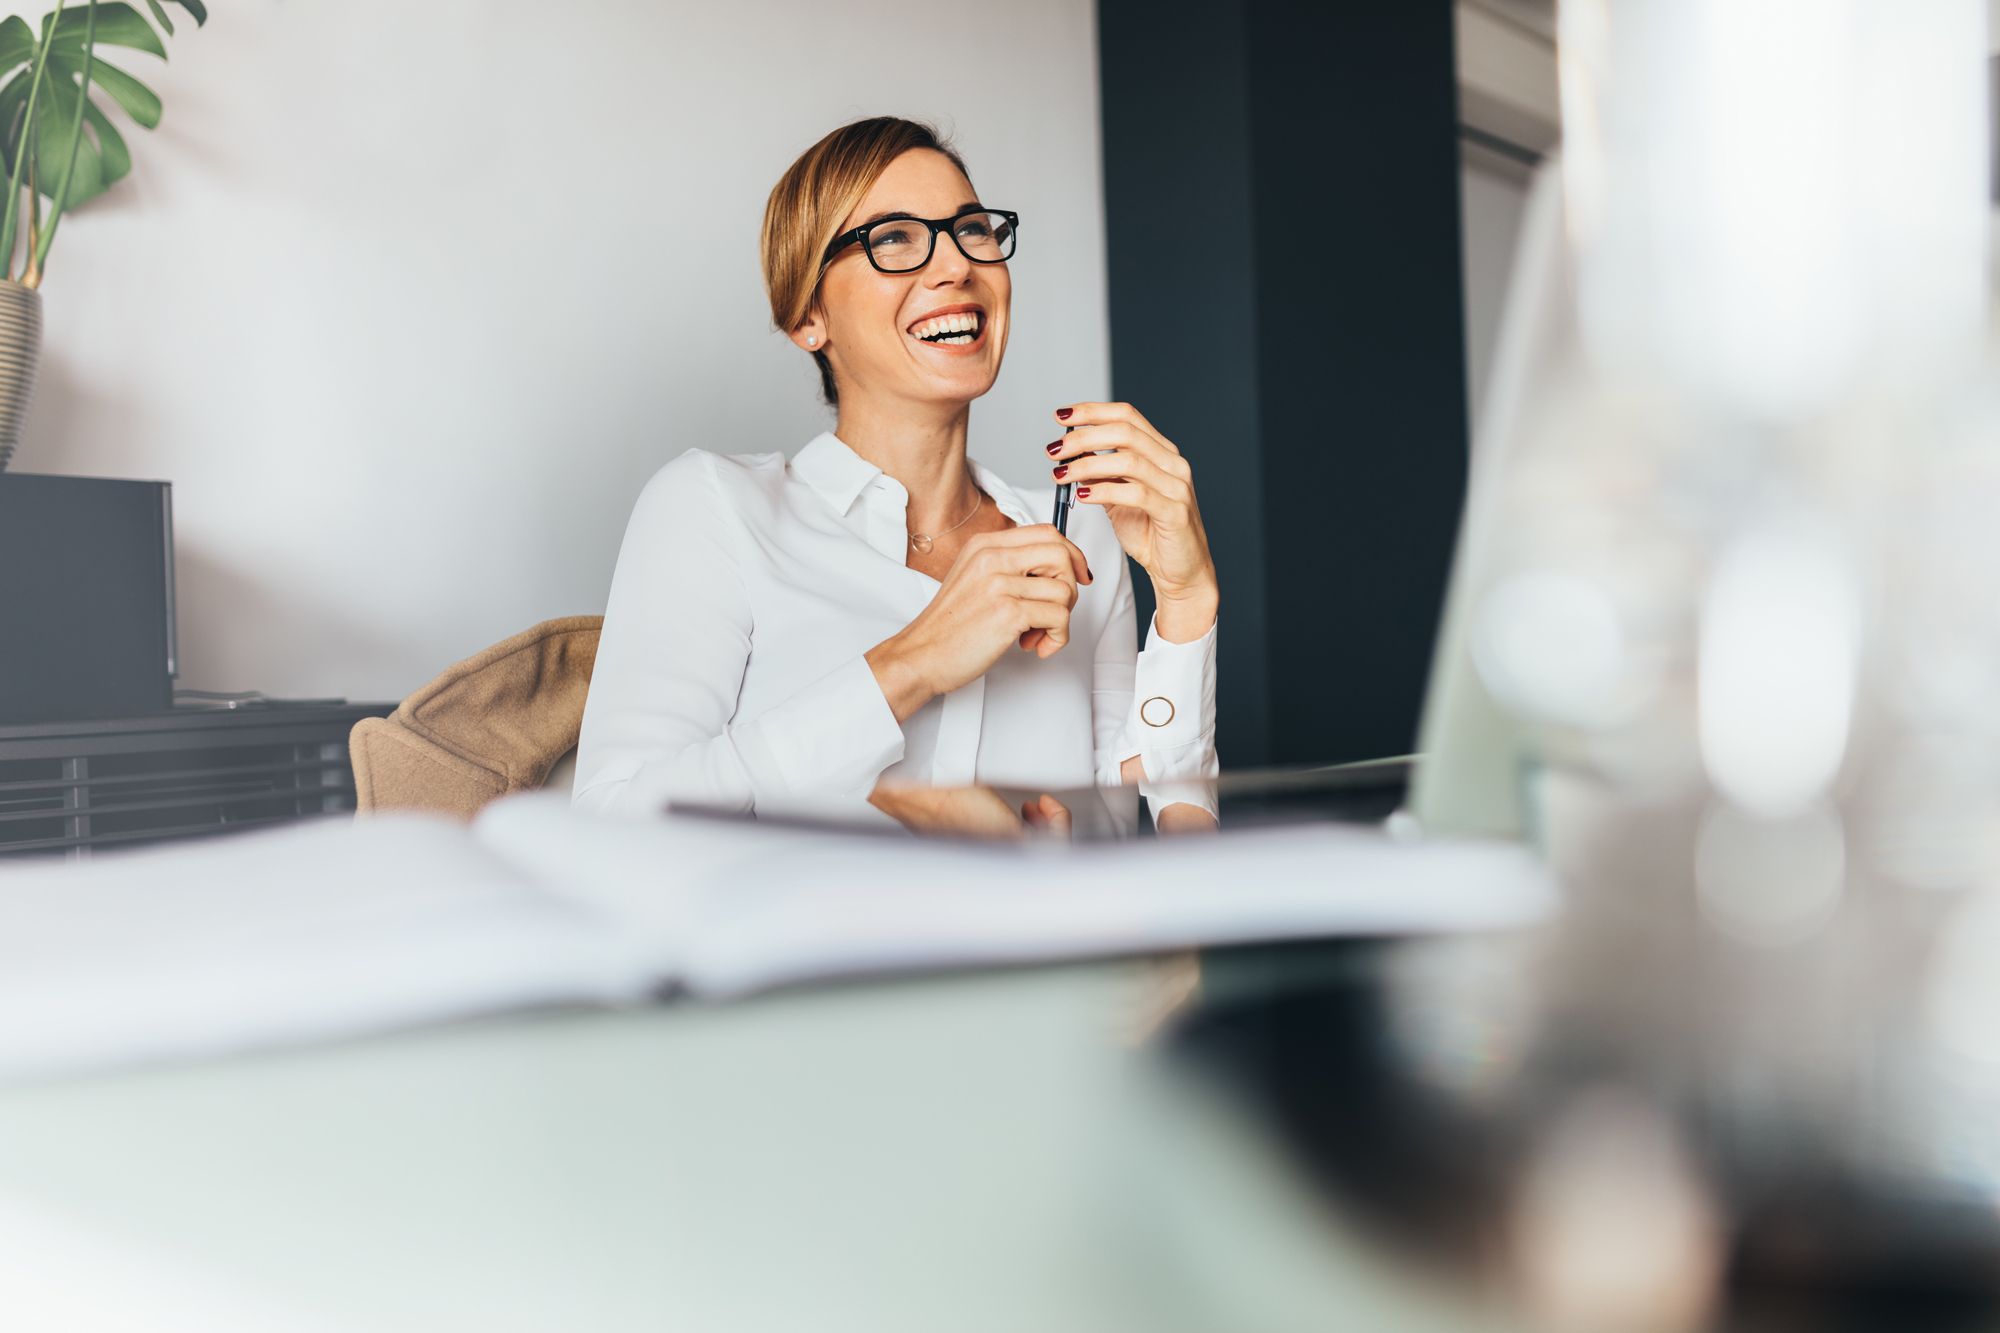 are you a role model for being courageous, an article by Ascend - leading boutique talent strategy and leadership development consultancy based in London, England.